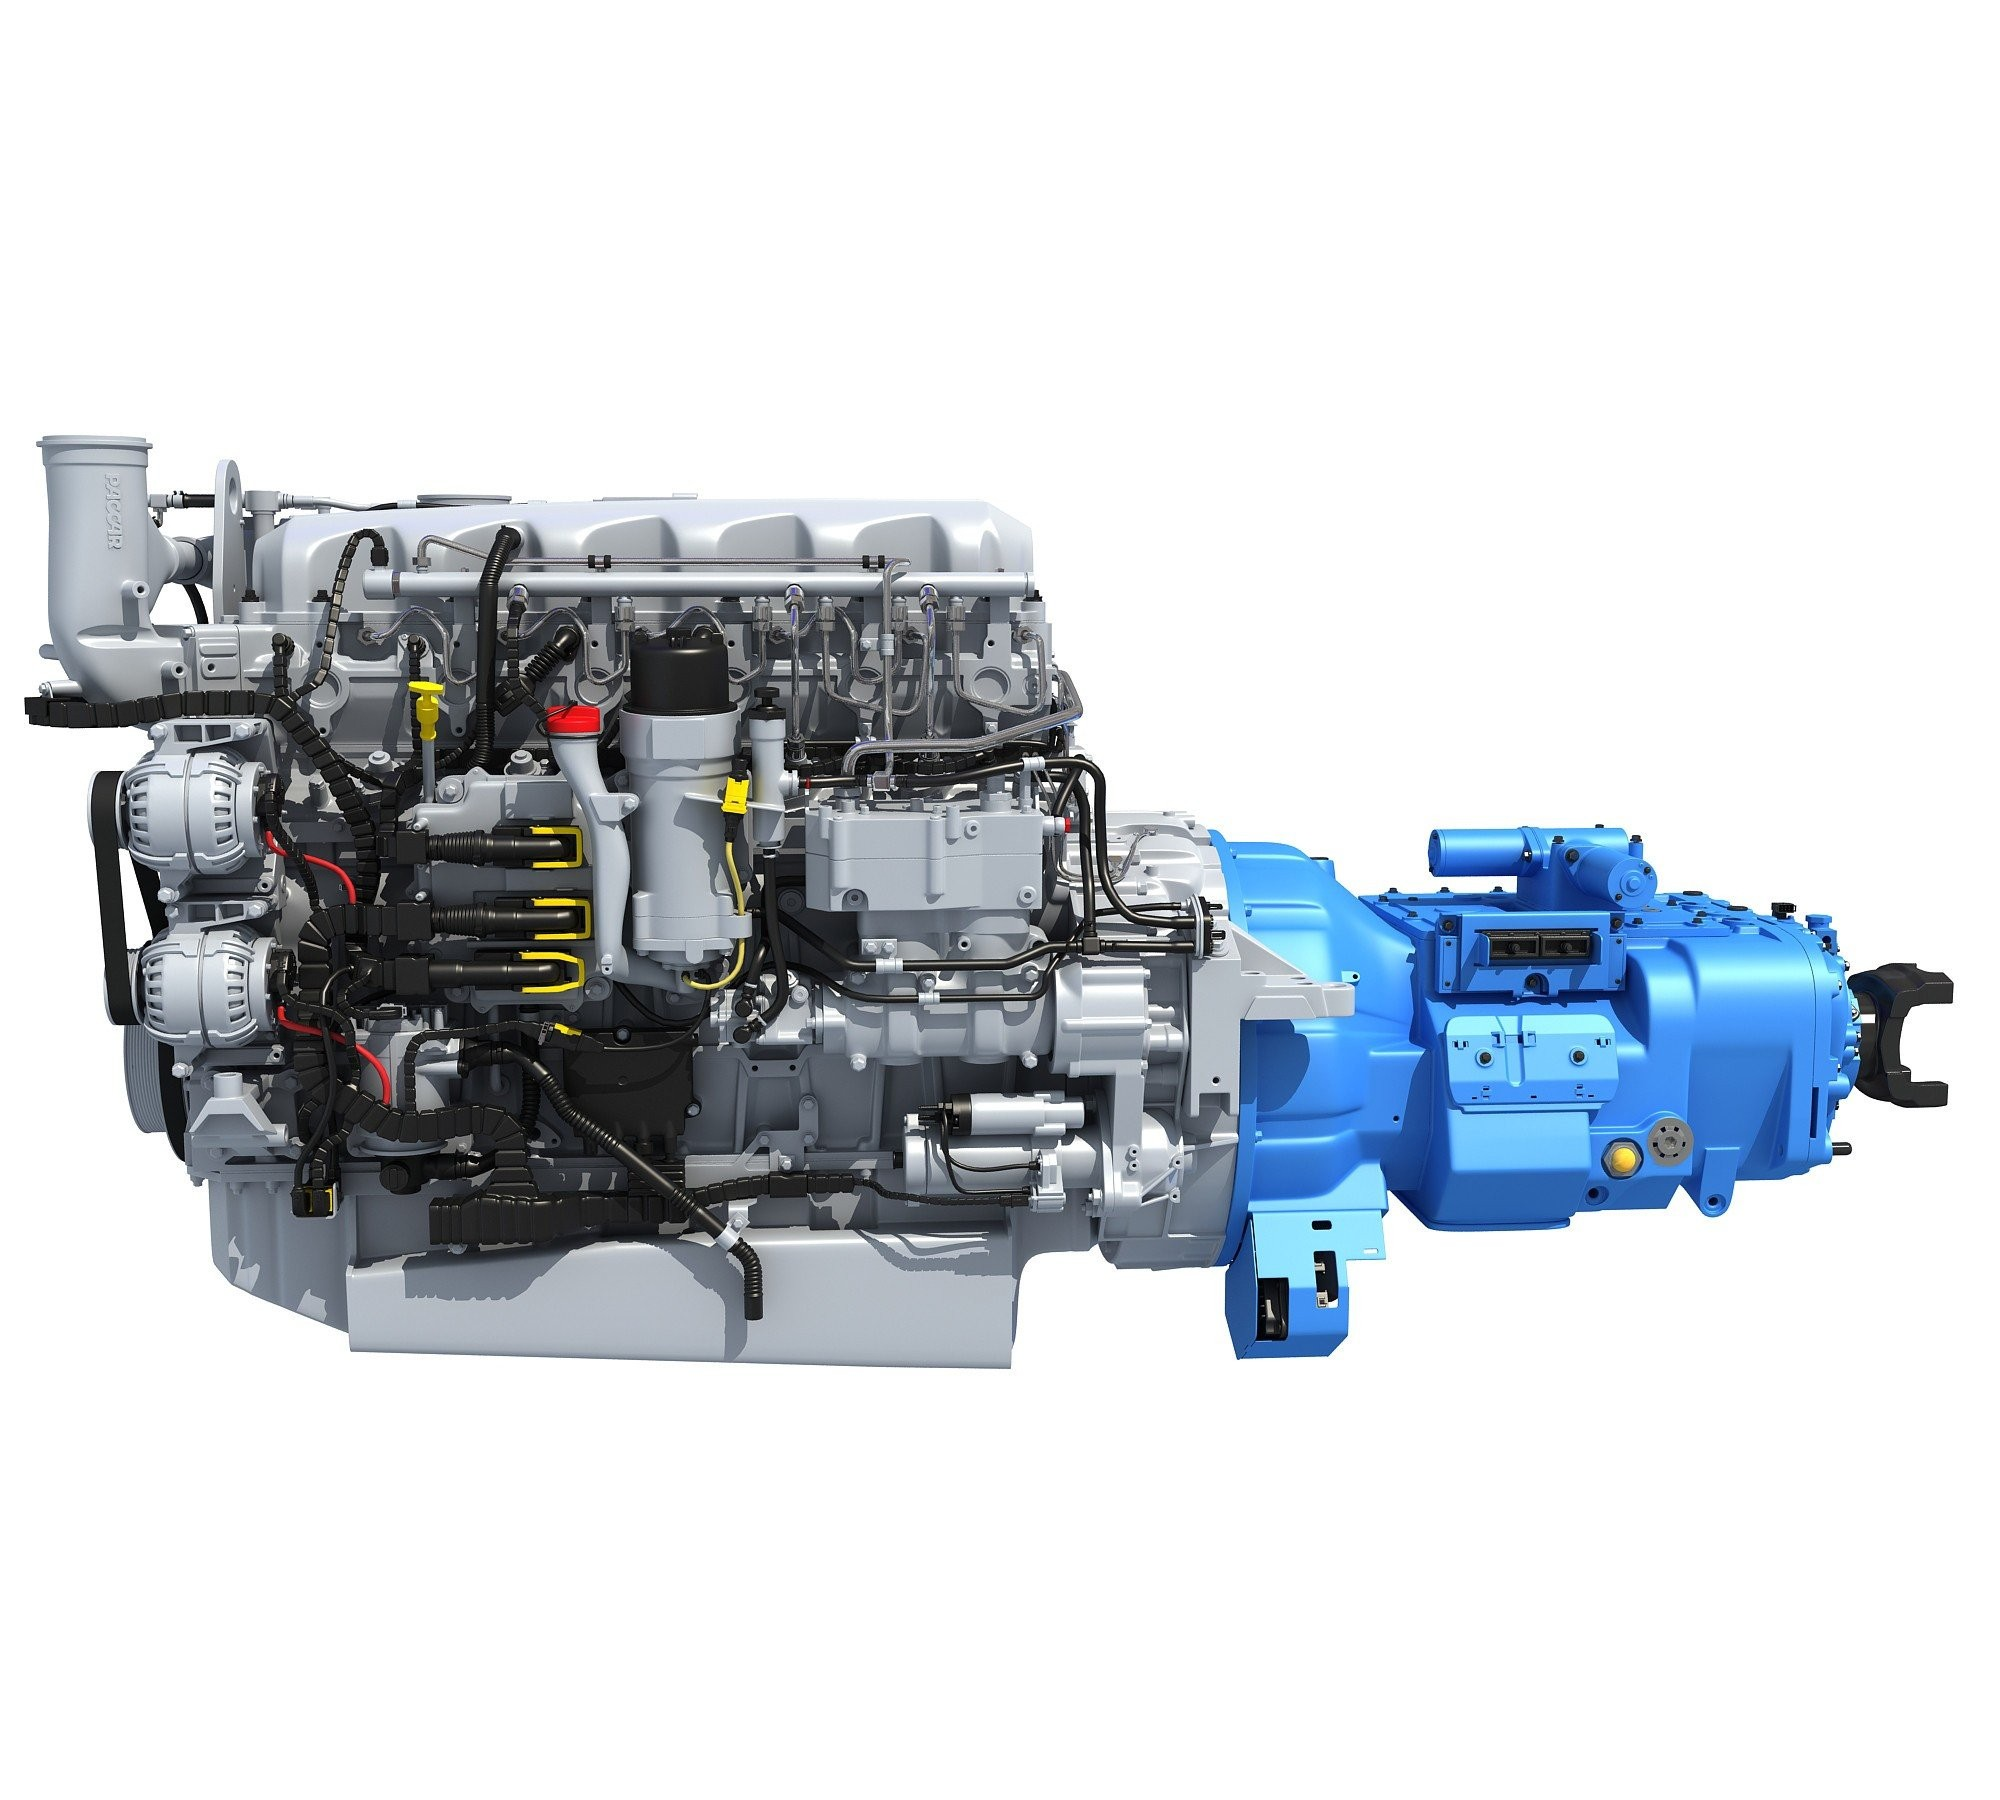 hight resolution of paccar mx 13 engine diagram paccar mx 13 engine with transmission 3d horse of paccar